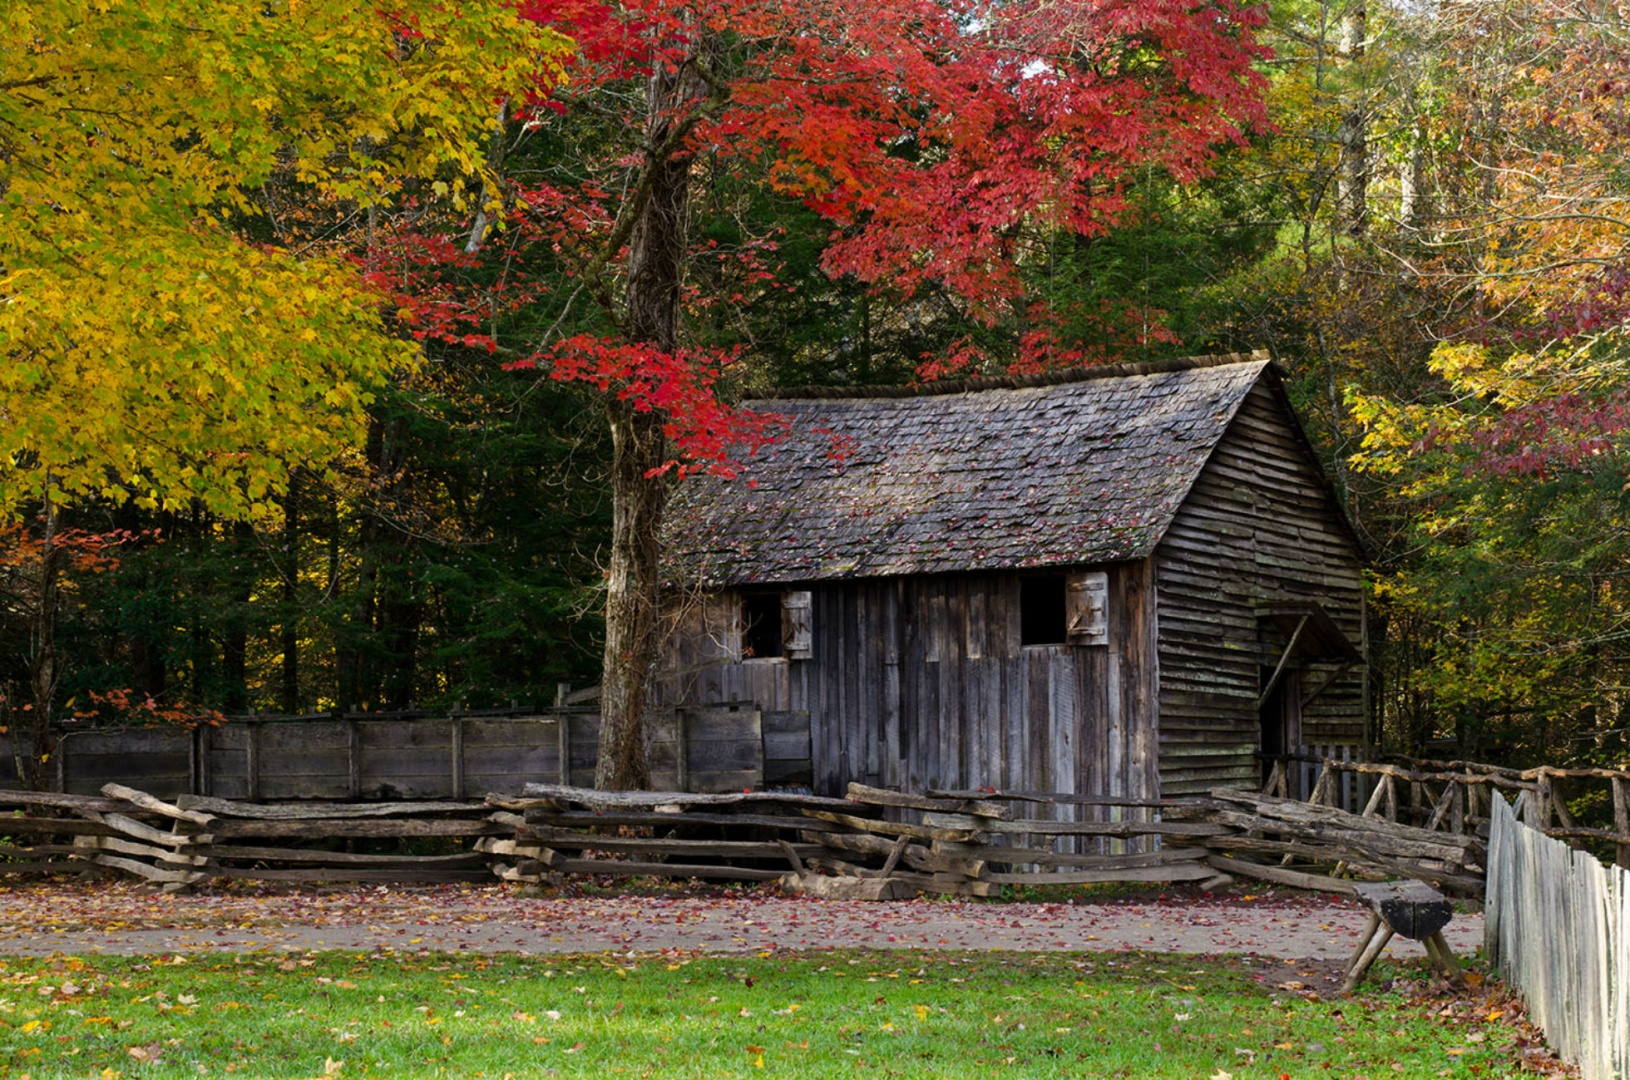 Us department of the interior an old wooden cabin surrounded by a wooden fence stands on the edge of a forest publicscrutiny Image collections